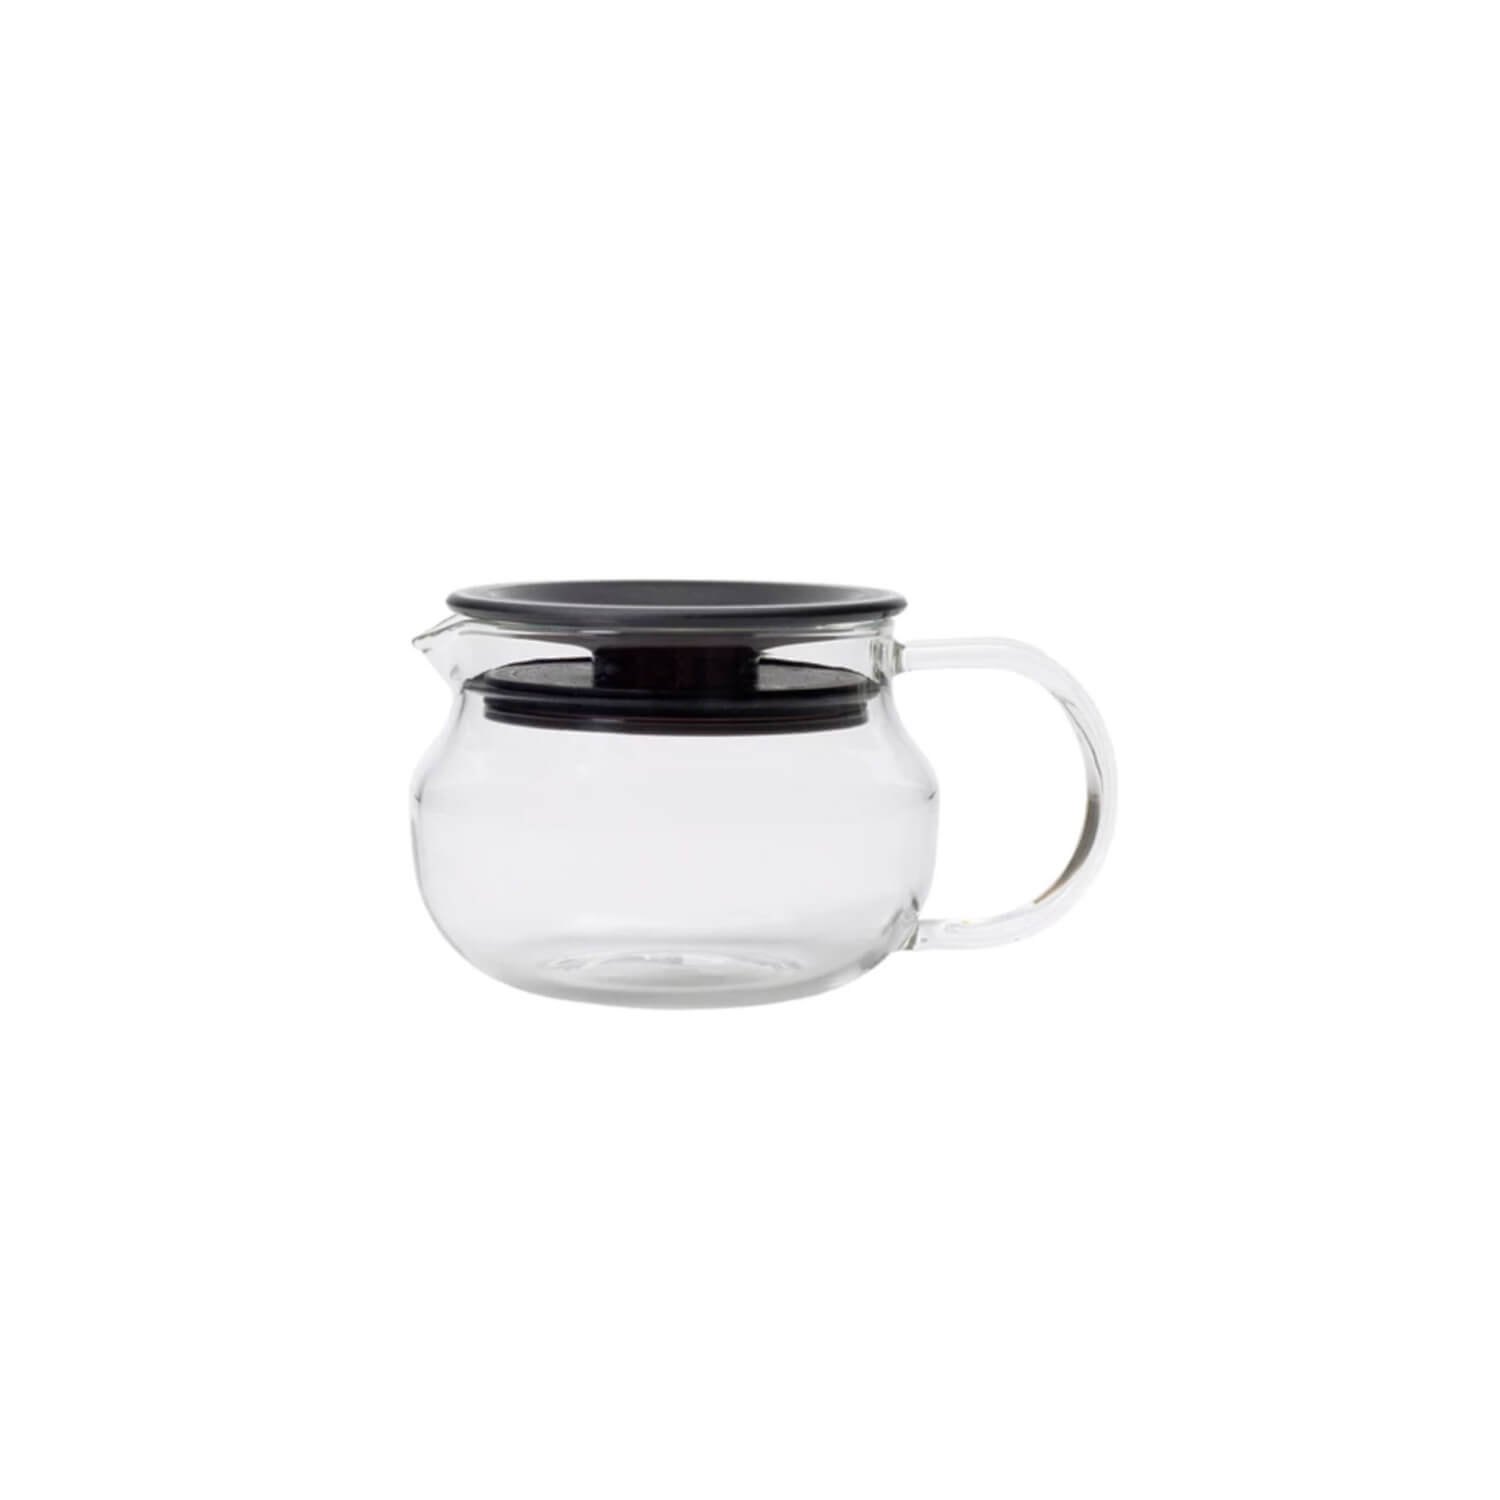 Theepot - Kinto - One touch -  280 ml brown